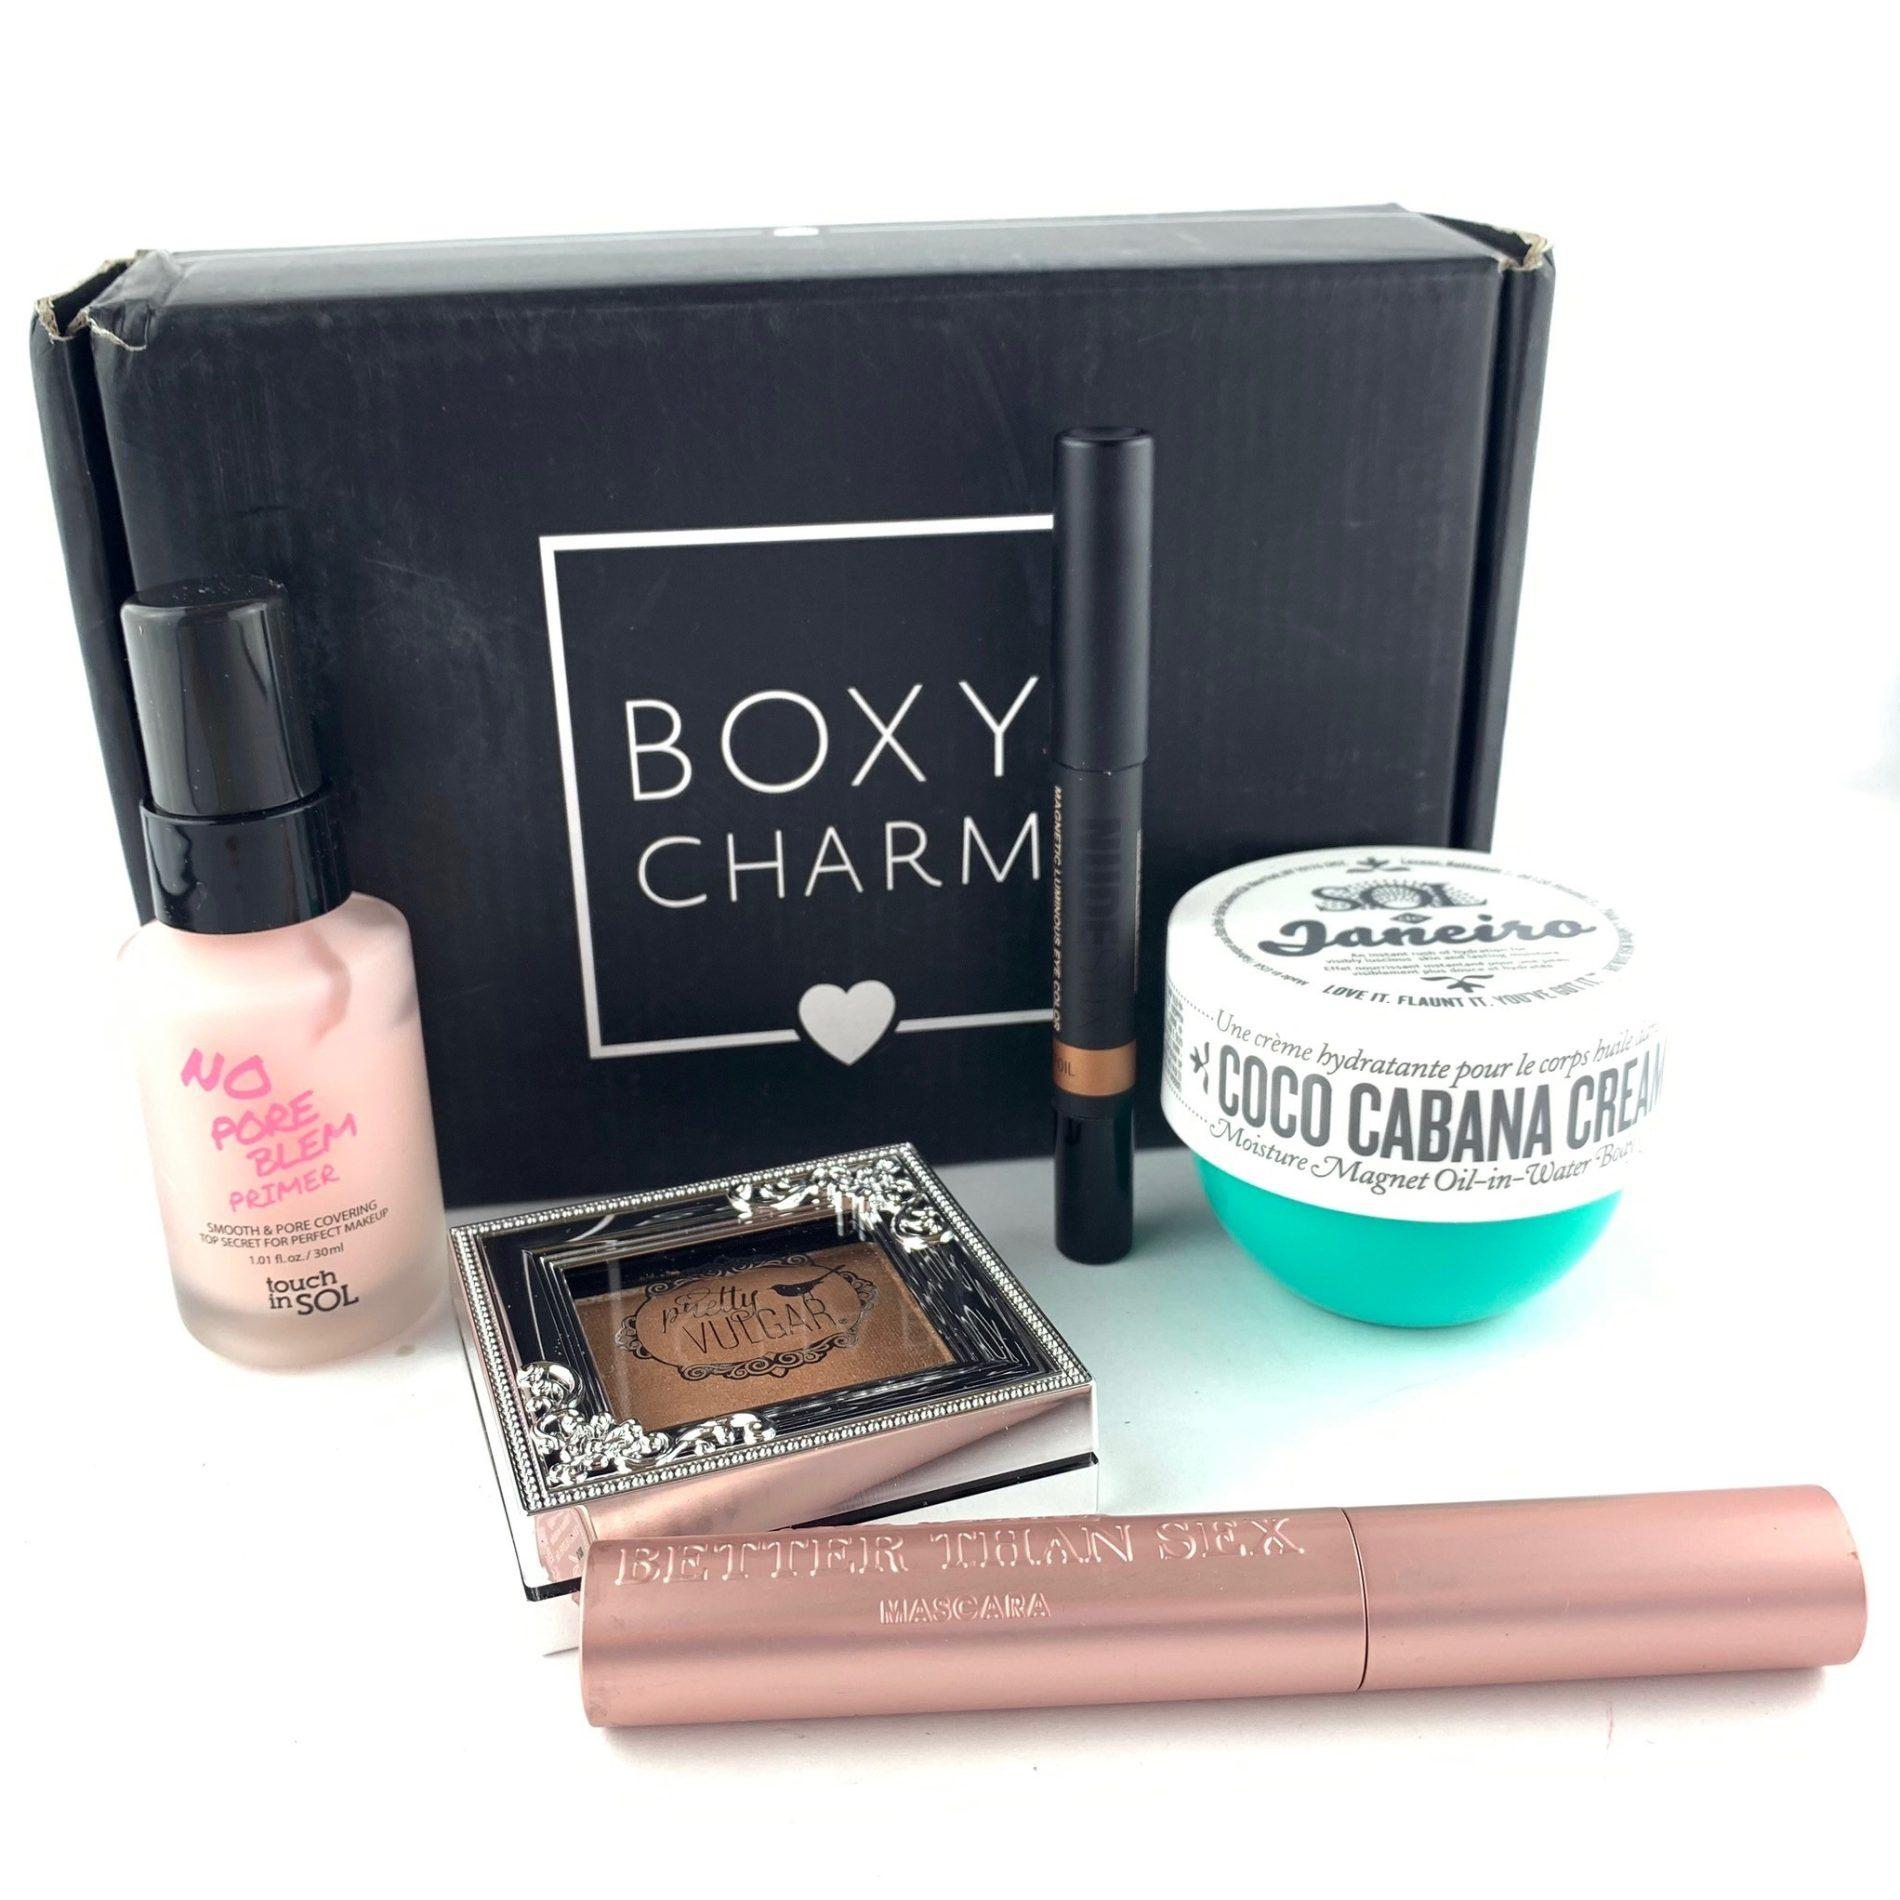 BOXYCHARM Subscription Review – February 2019